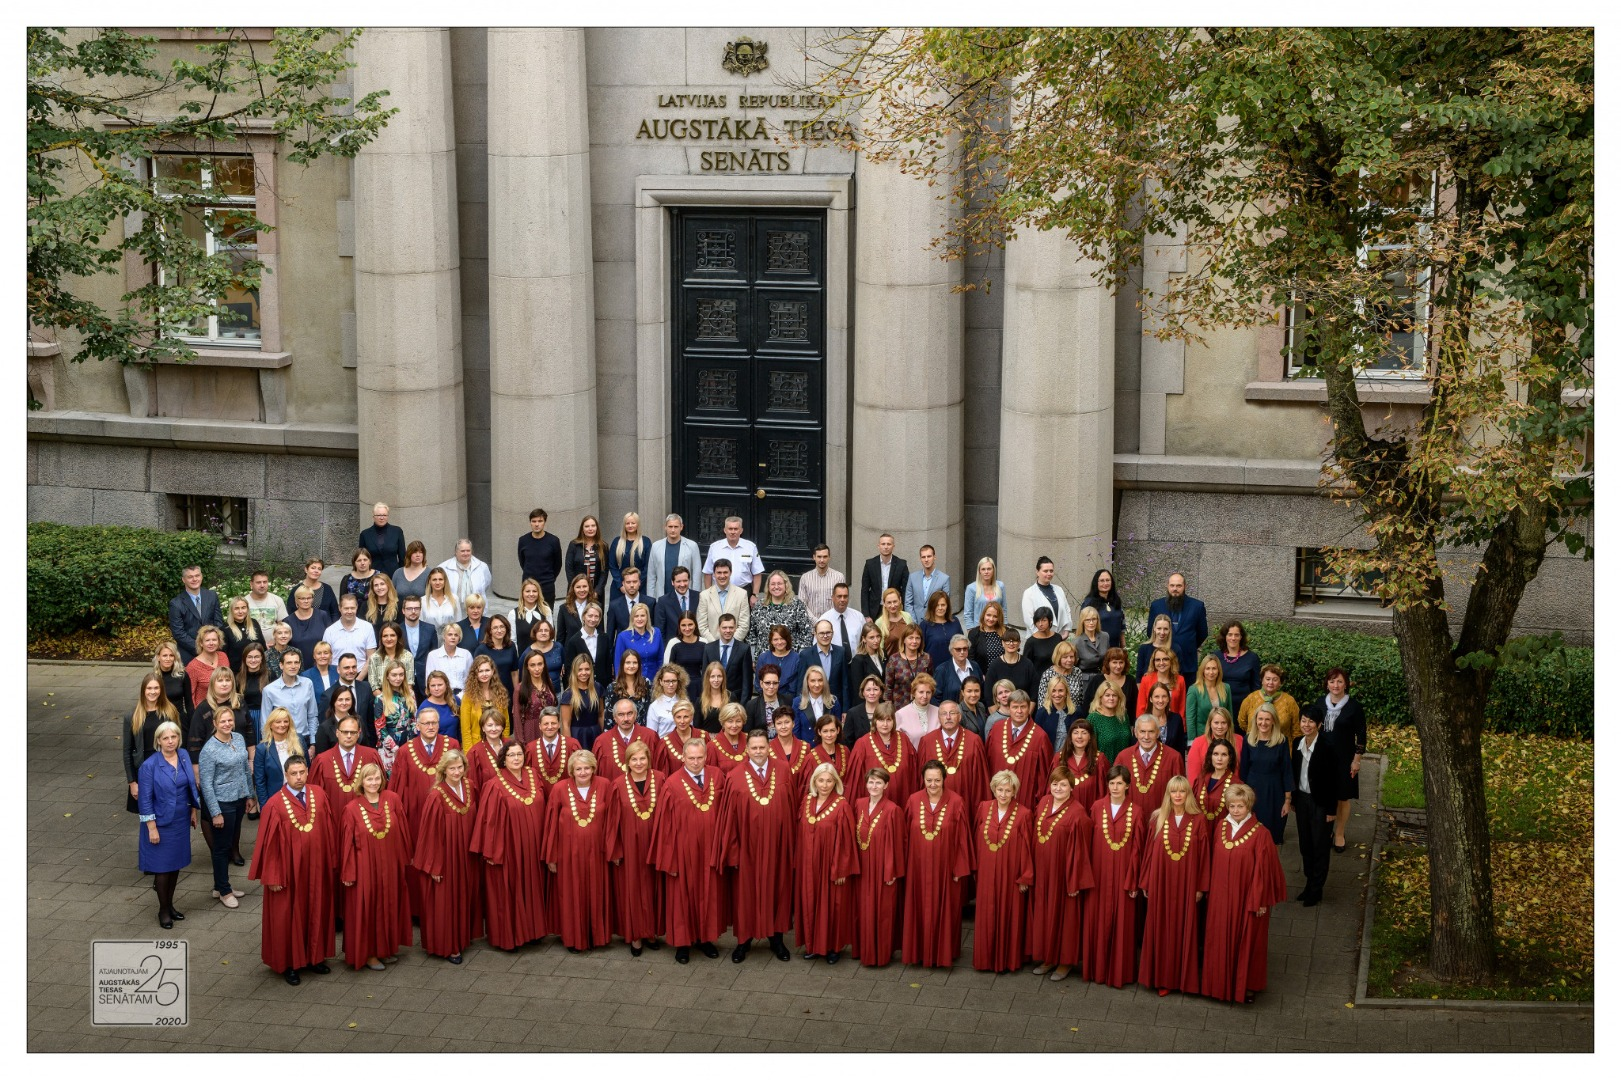 10.2020. Employees and senators of the Supreme Court in the photograph dedicated to 25-year anniversary of restored Senate